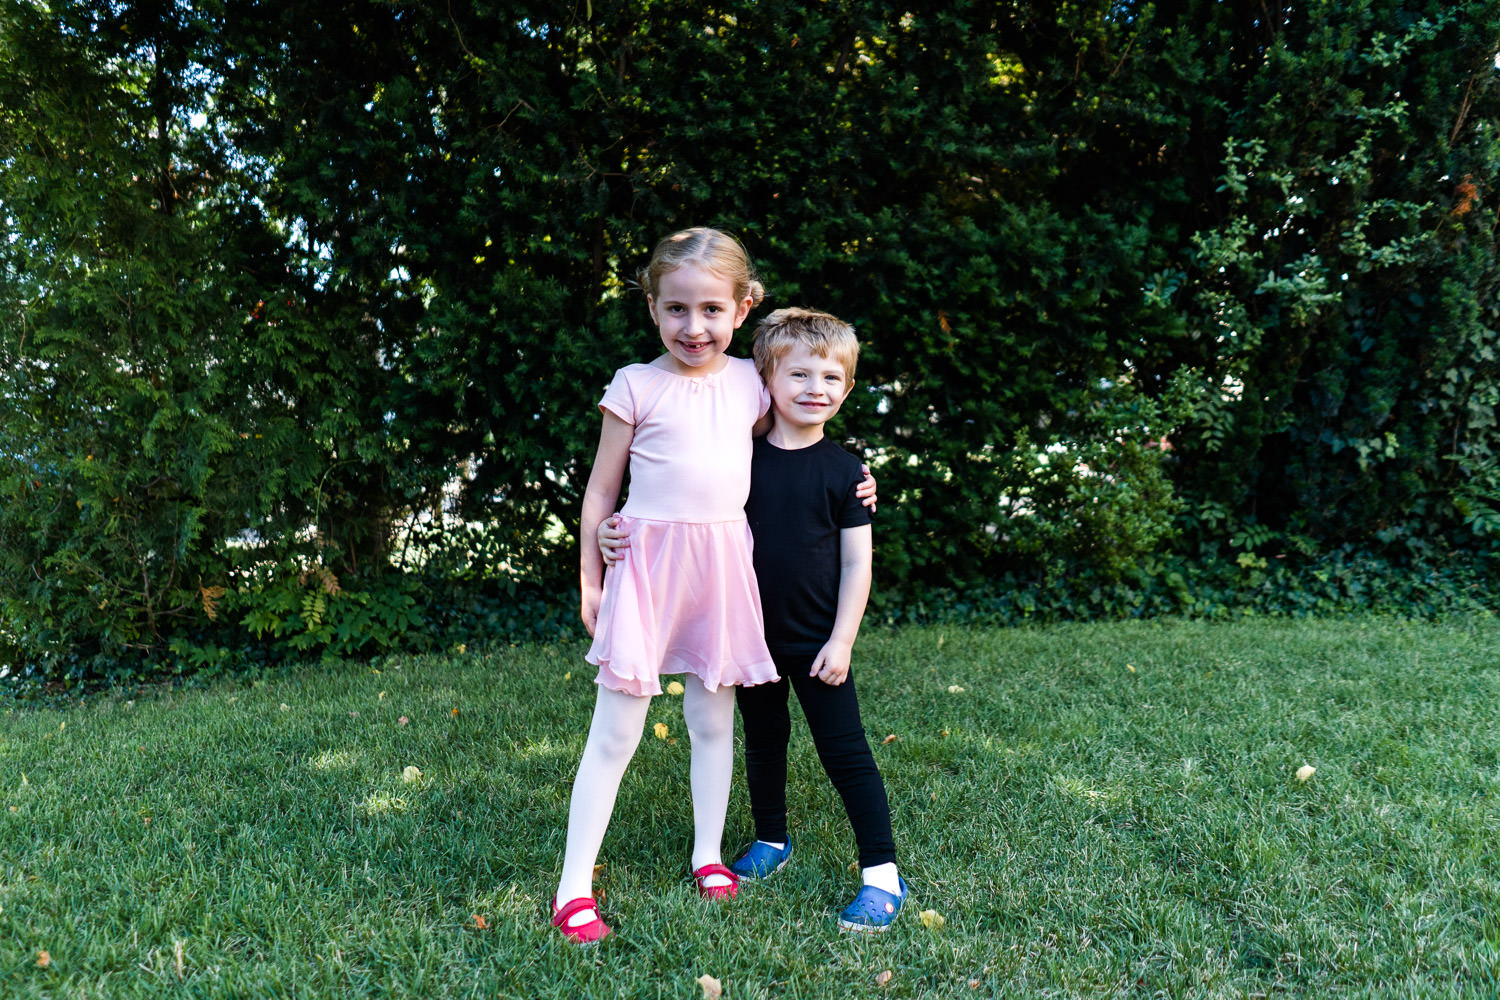 Two children in dance clothes stand on a lawn.